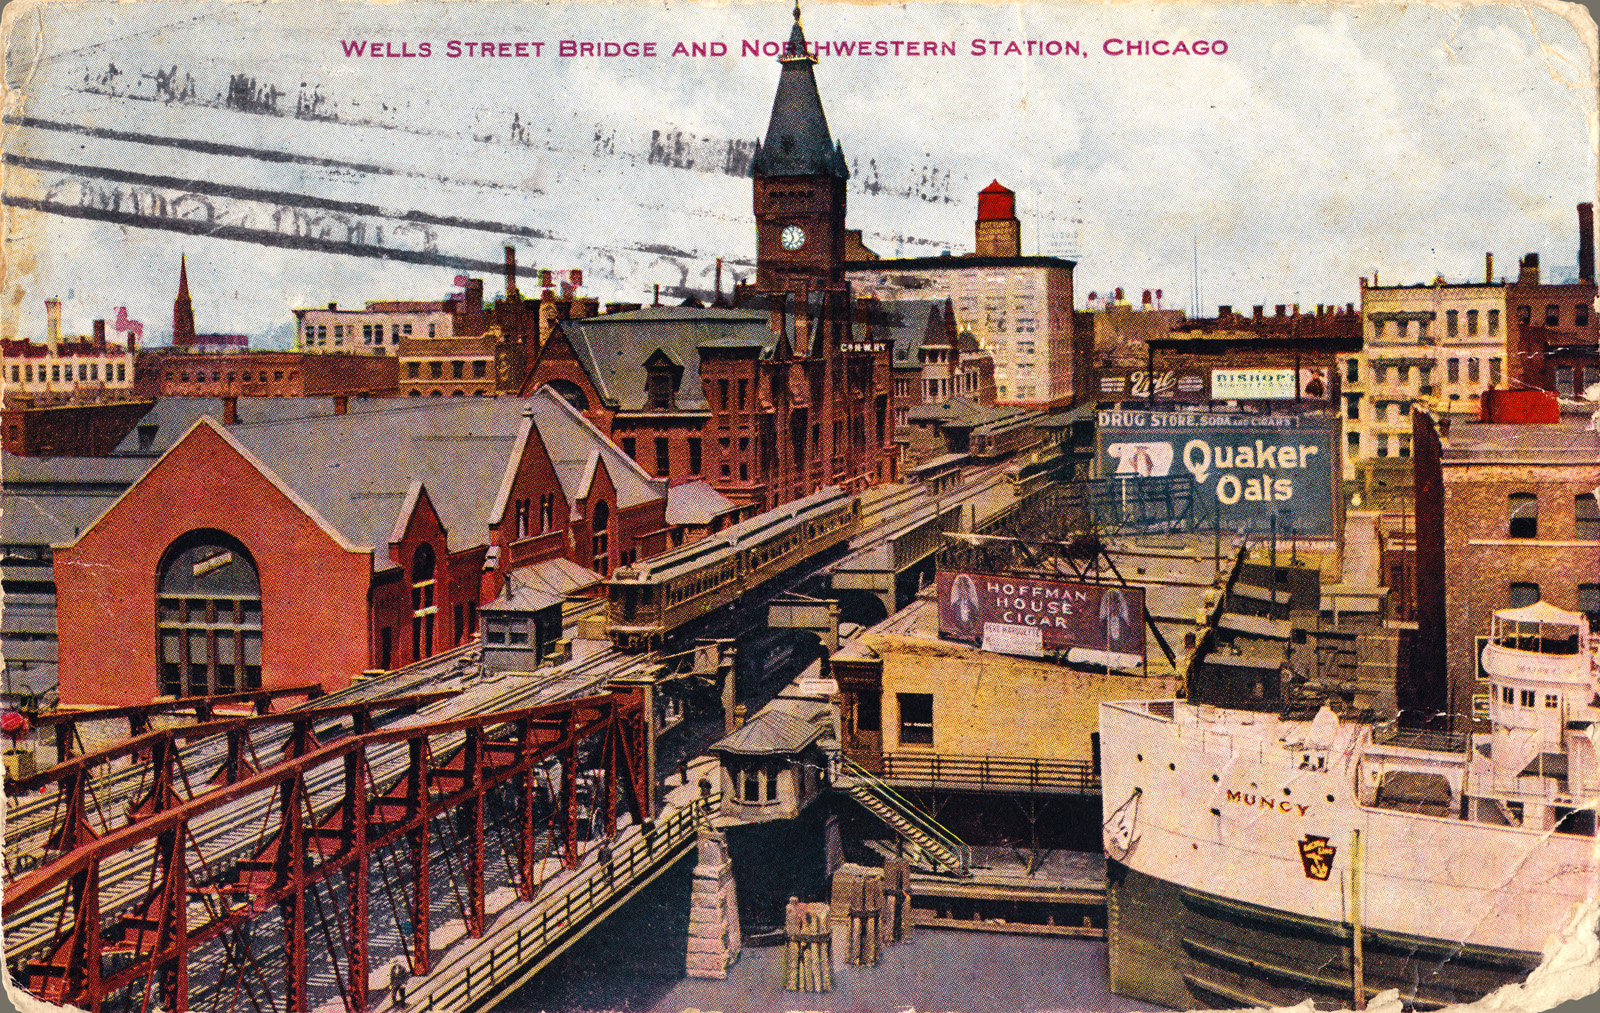 wells-street-bridge_courtesy Postcard Roundup